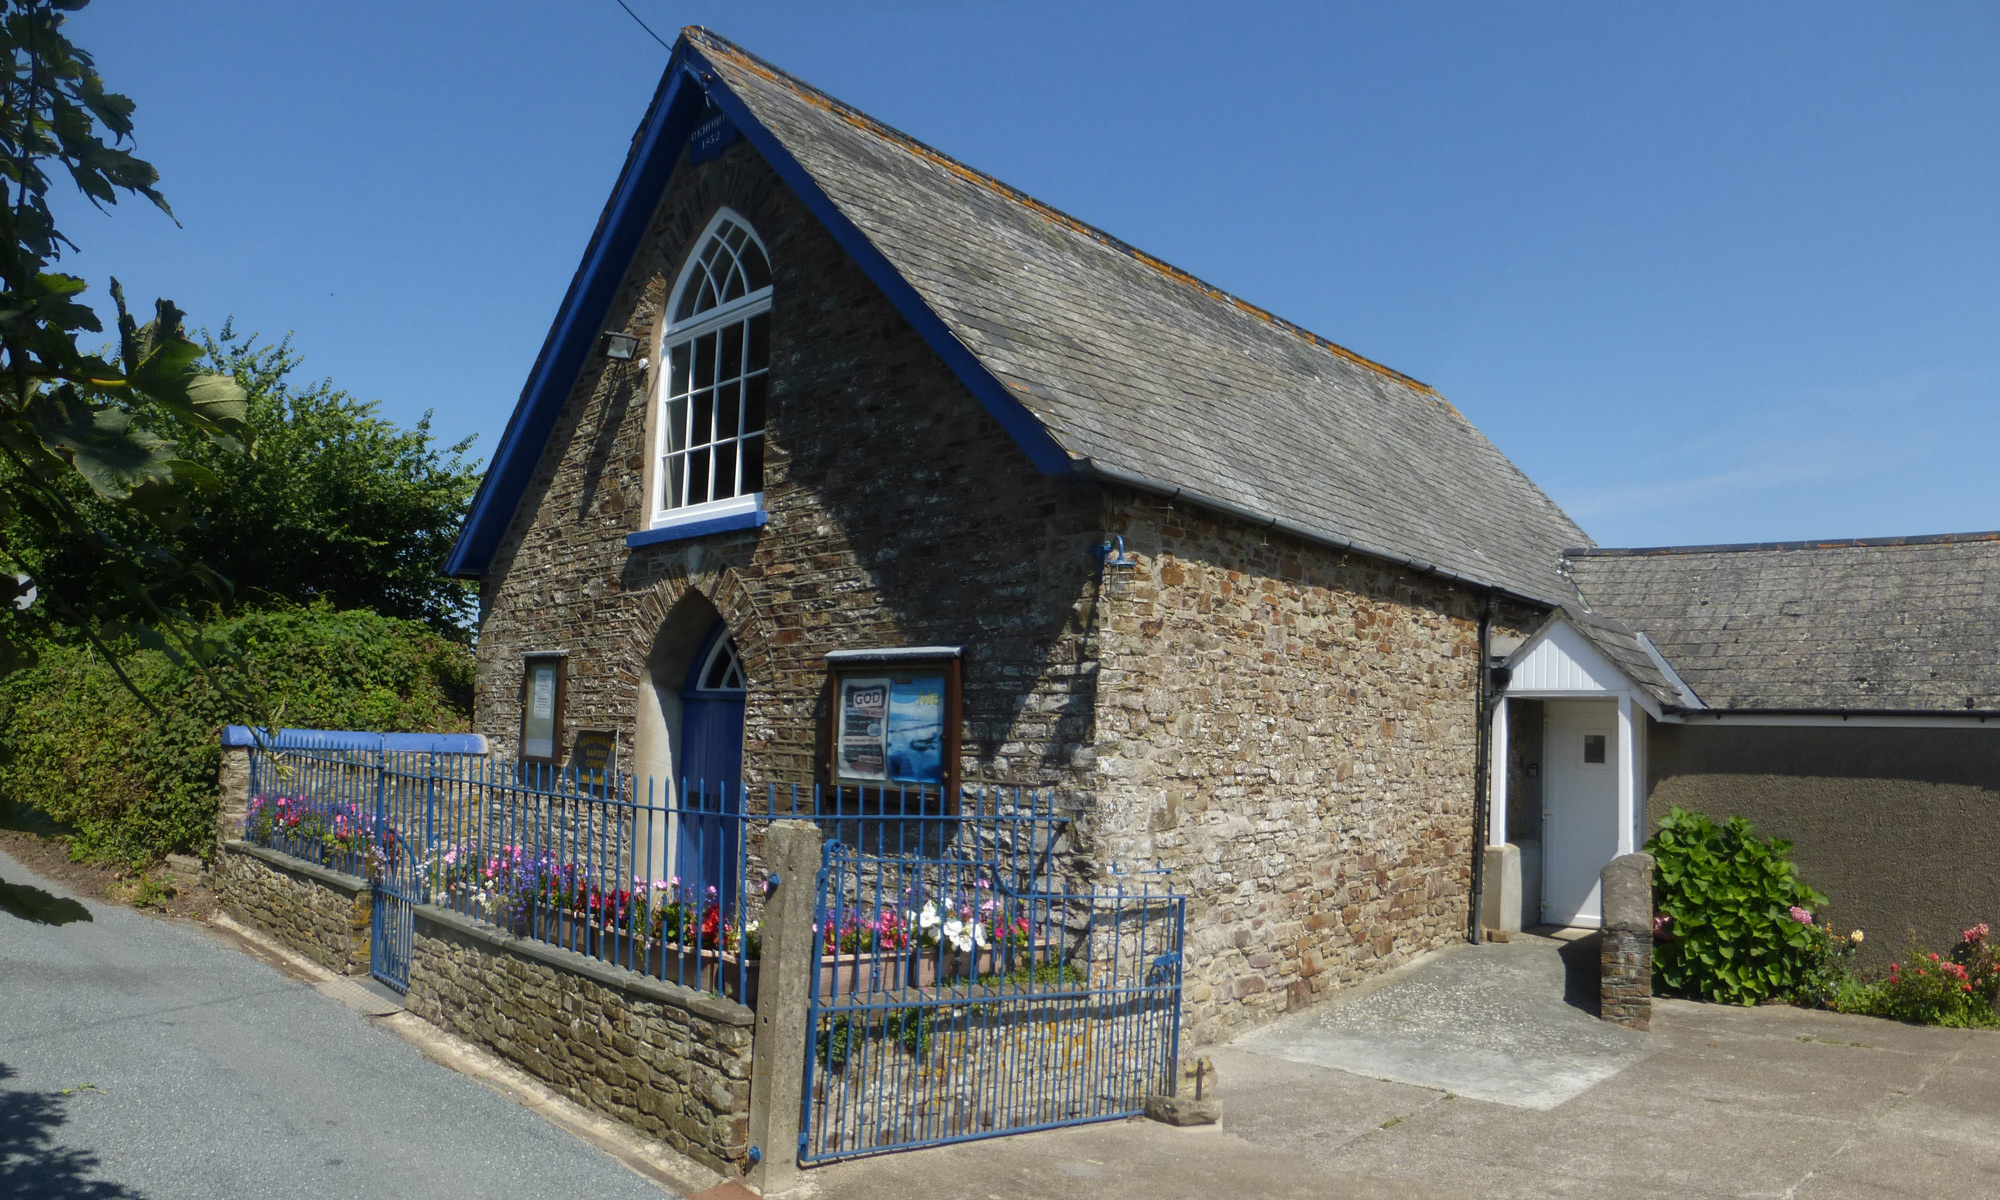 Abbotsham Baptist Church